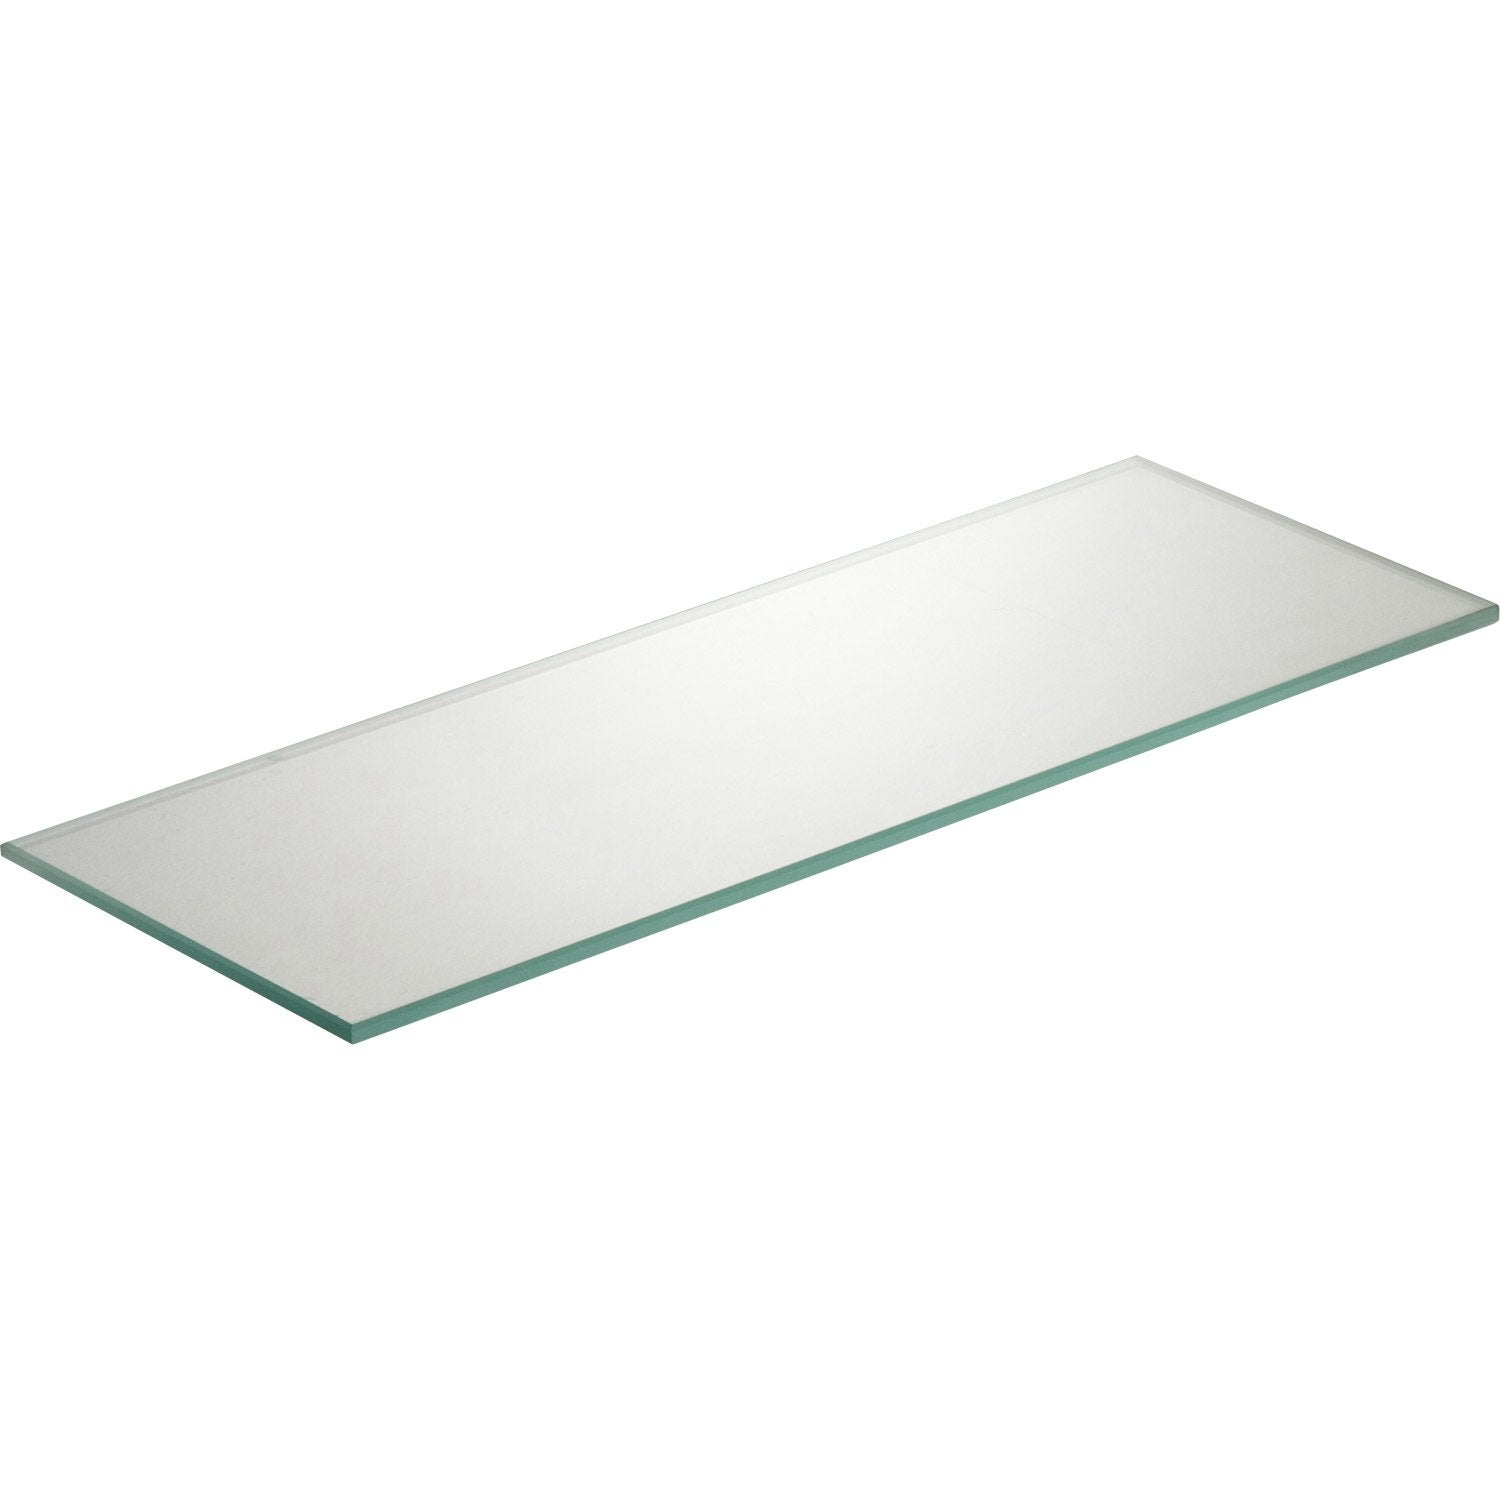 Etag re murale verre transparent x cm ep 6 mm leroy merlin - Achat plexiglass leroy merlin ...